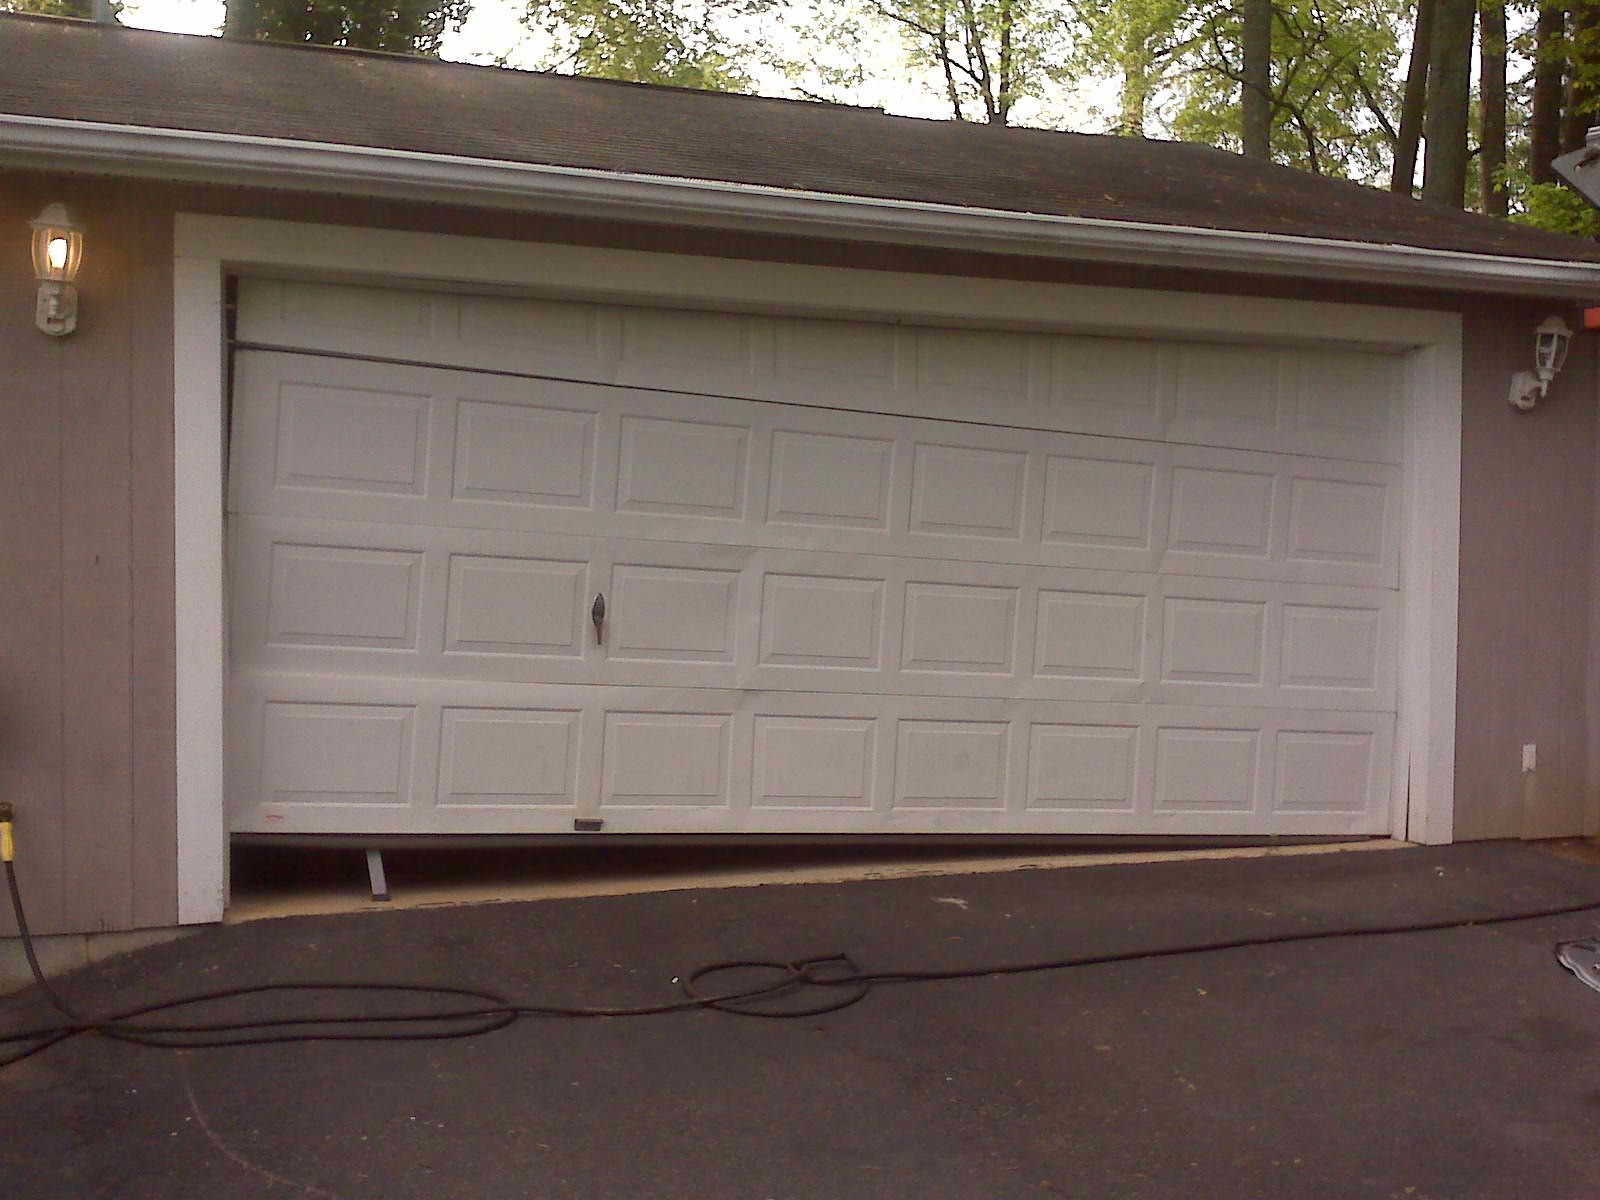 Garage Doors Made Into One Door After Plus Tilt How Can Replace With